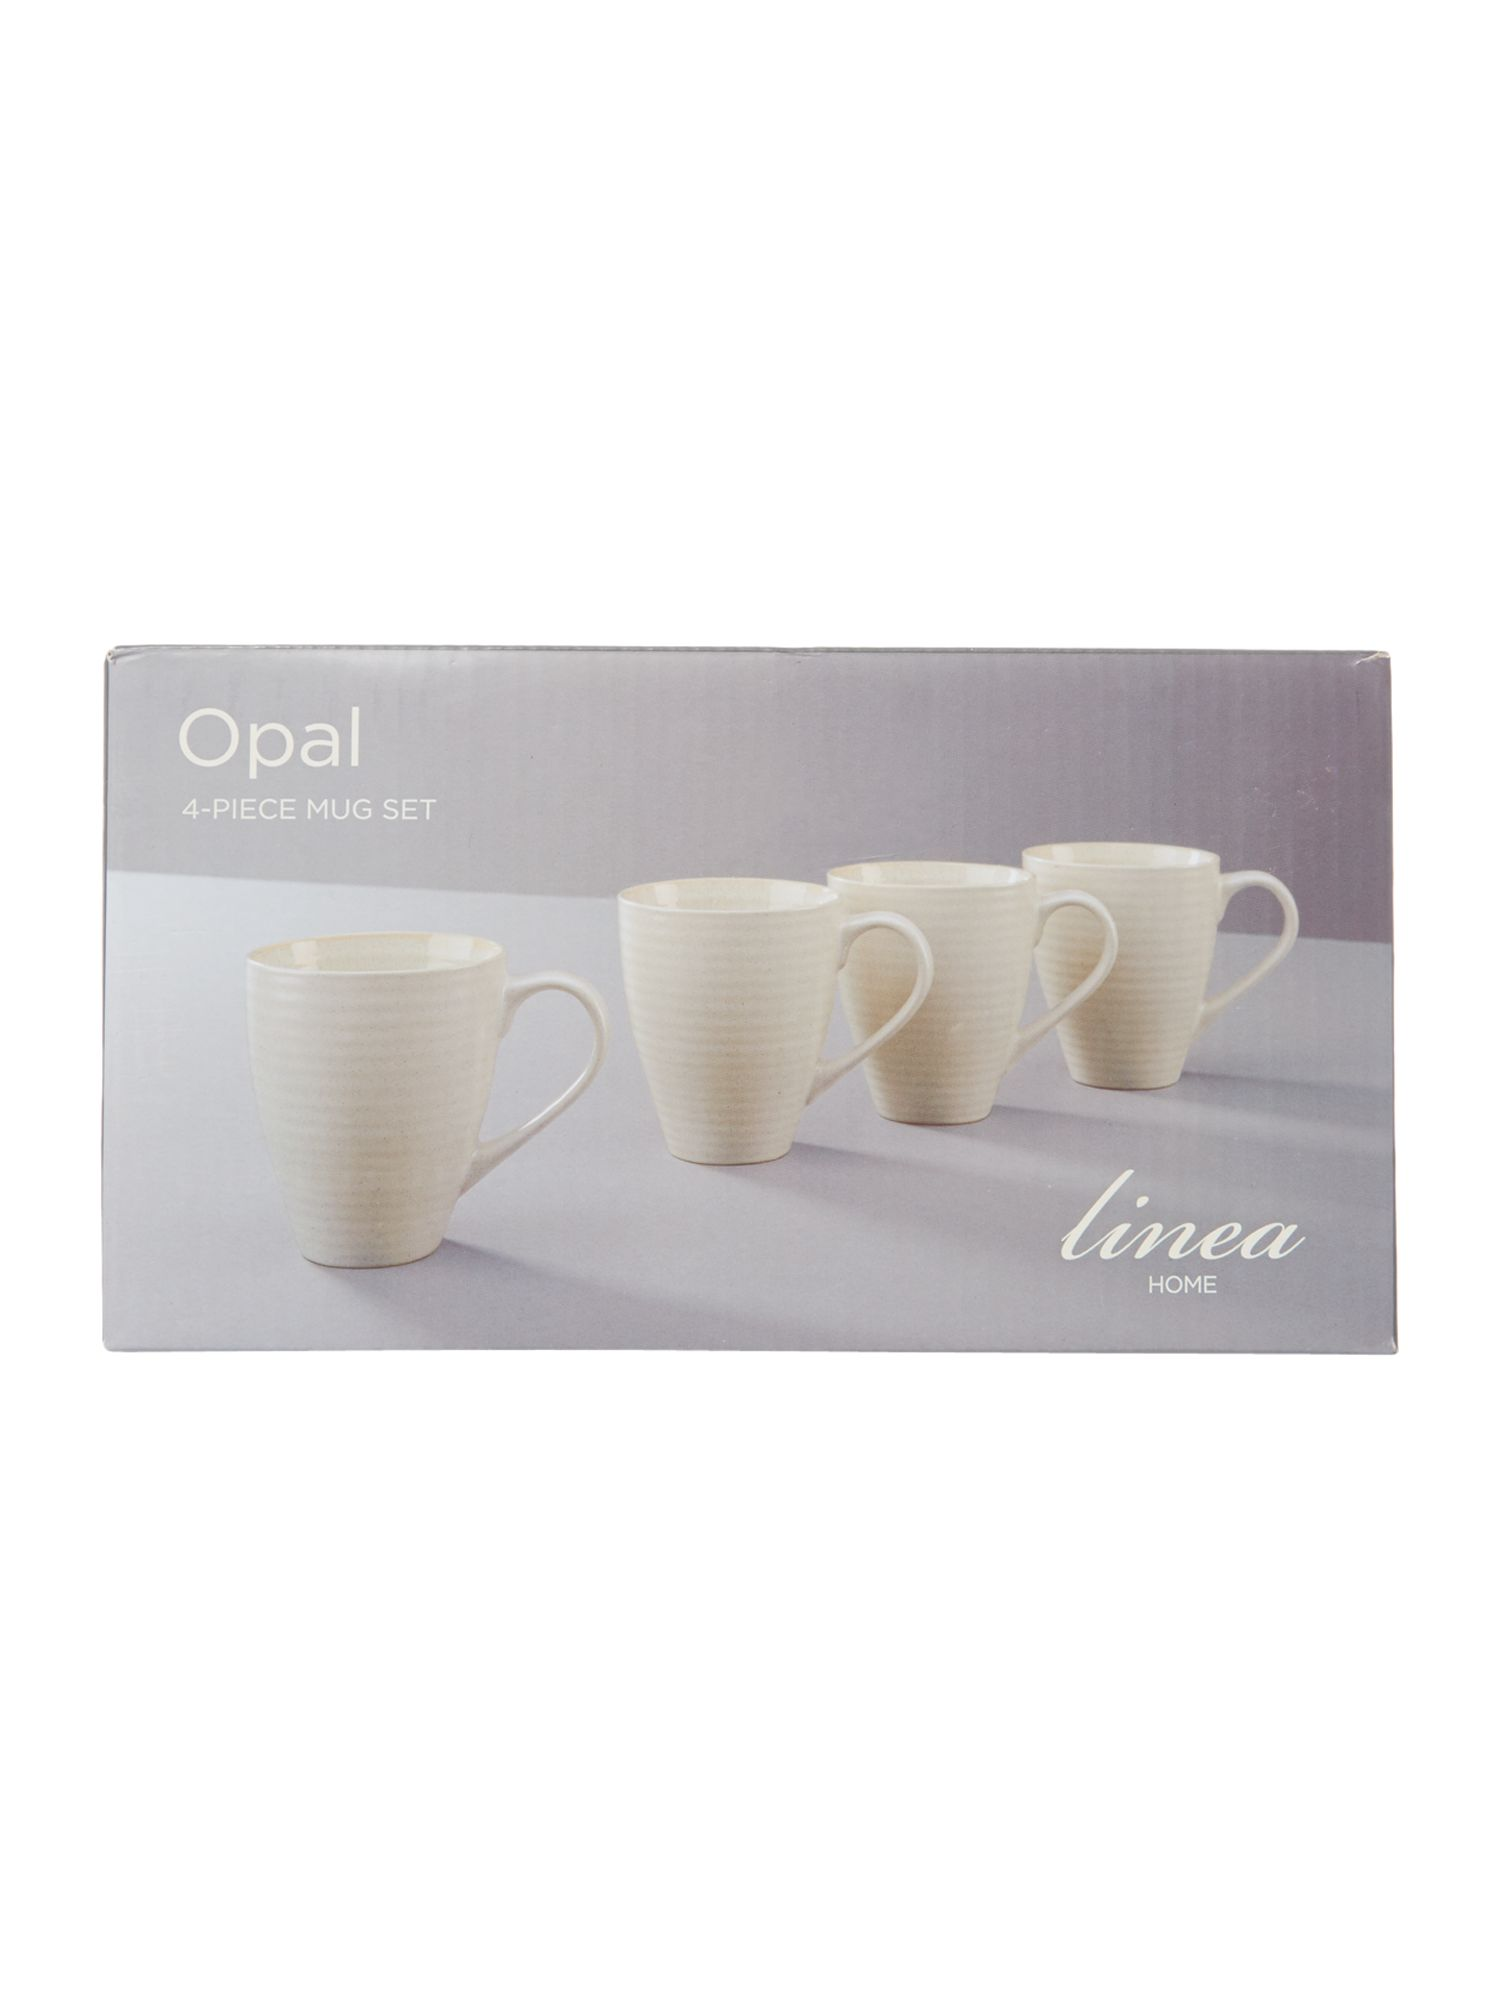 Linea Opal set of 4 mugs